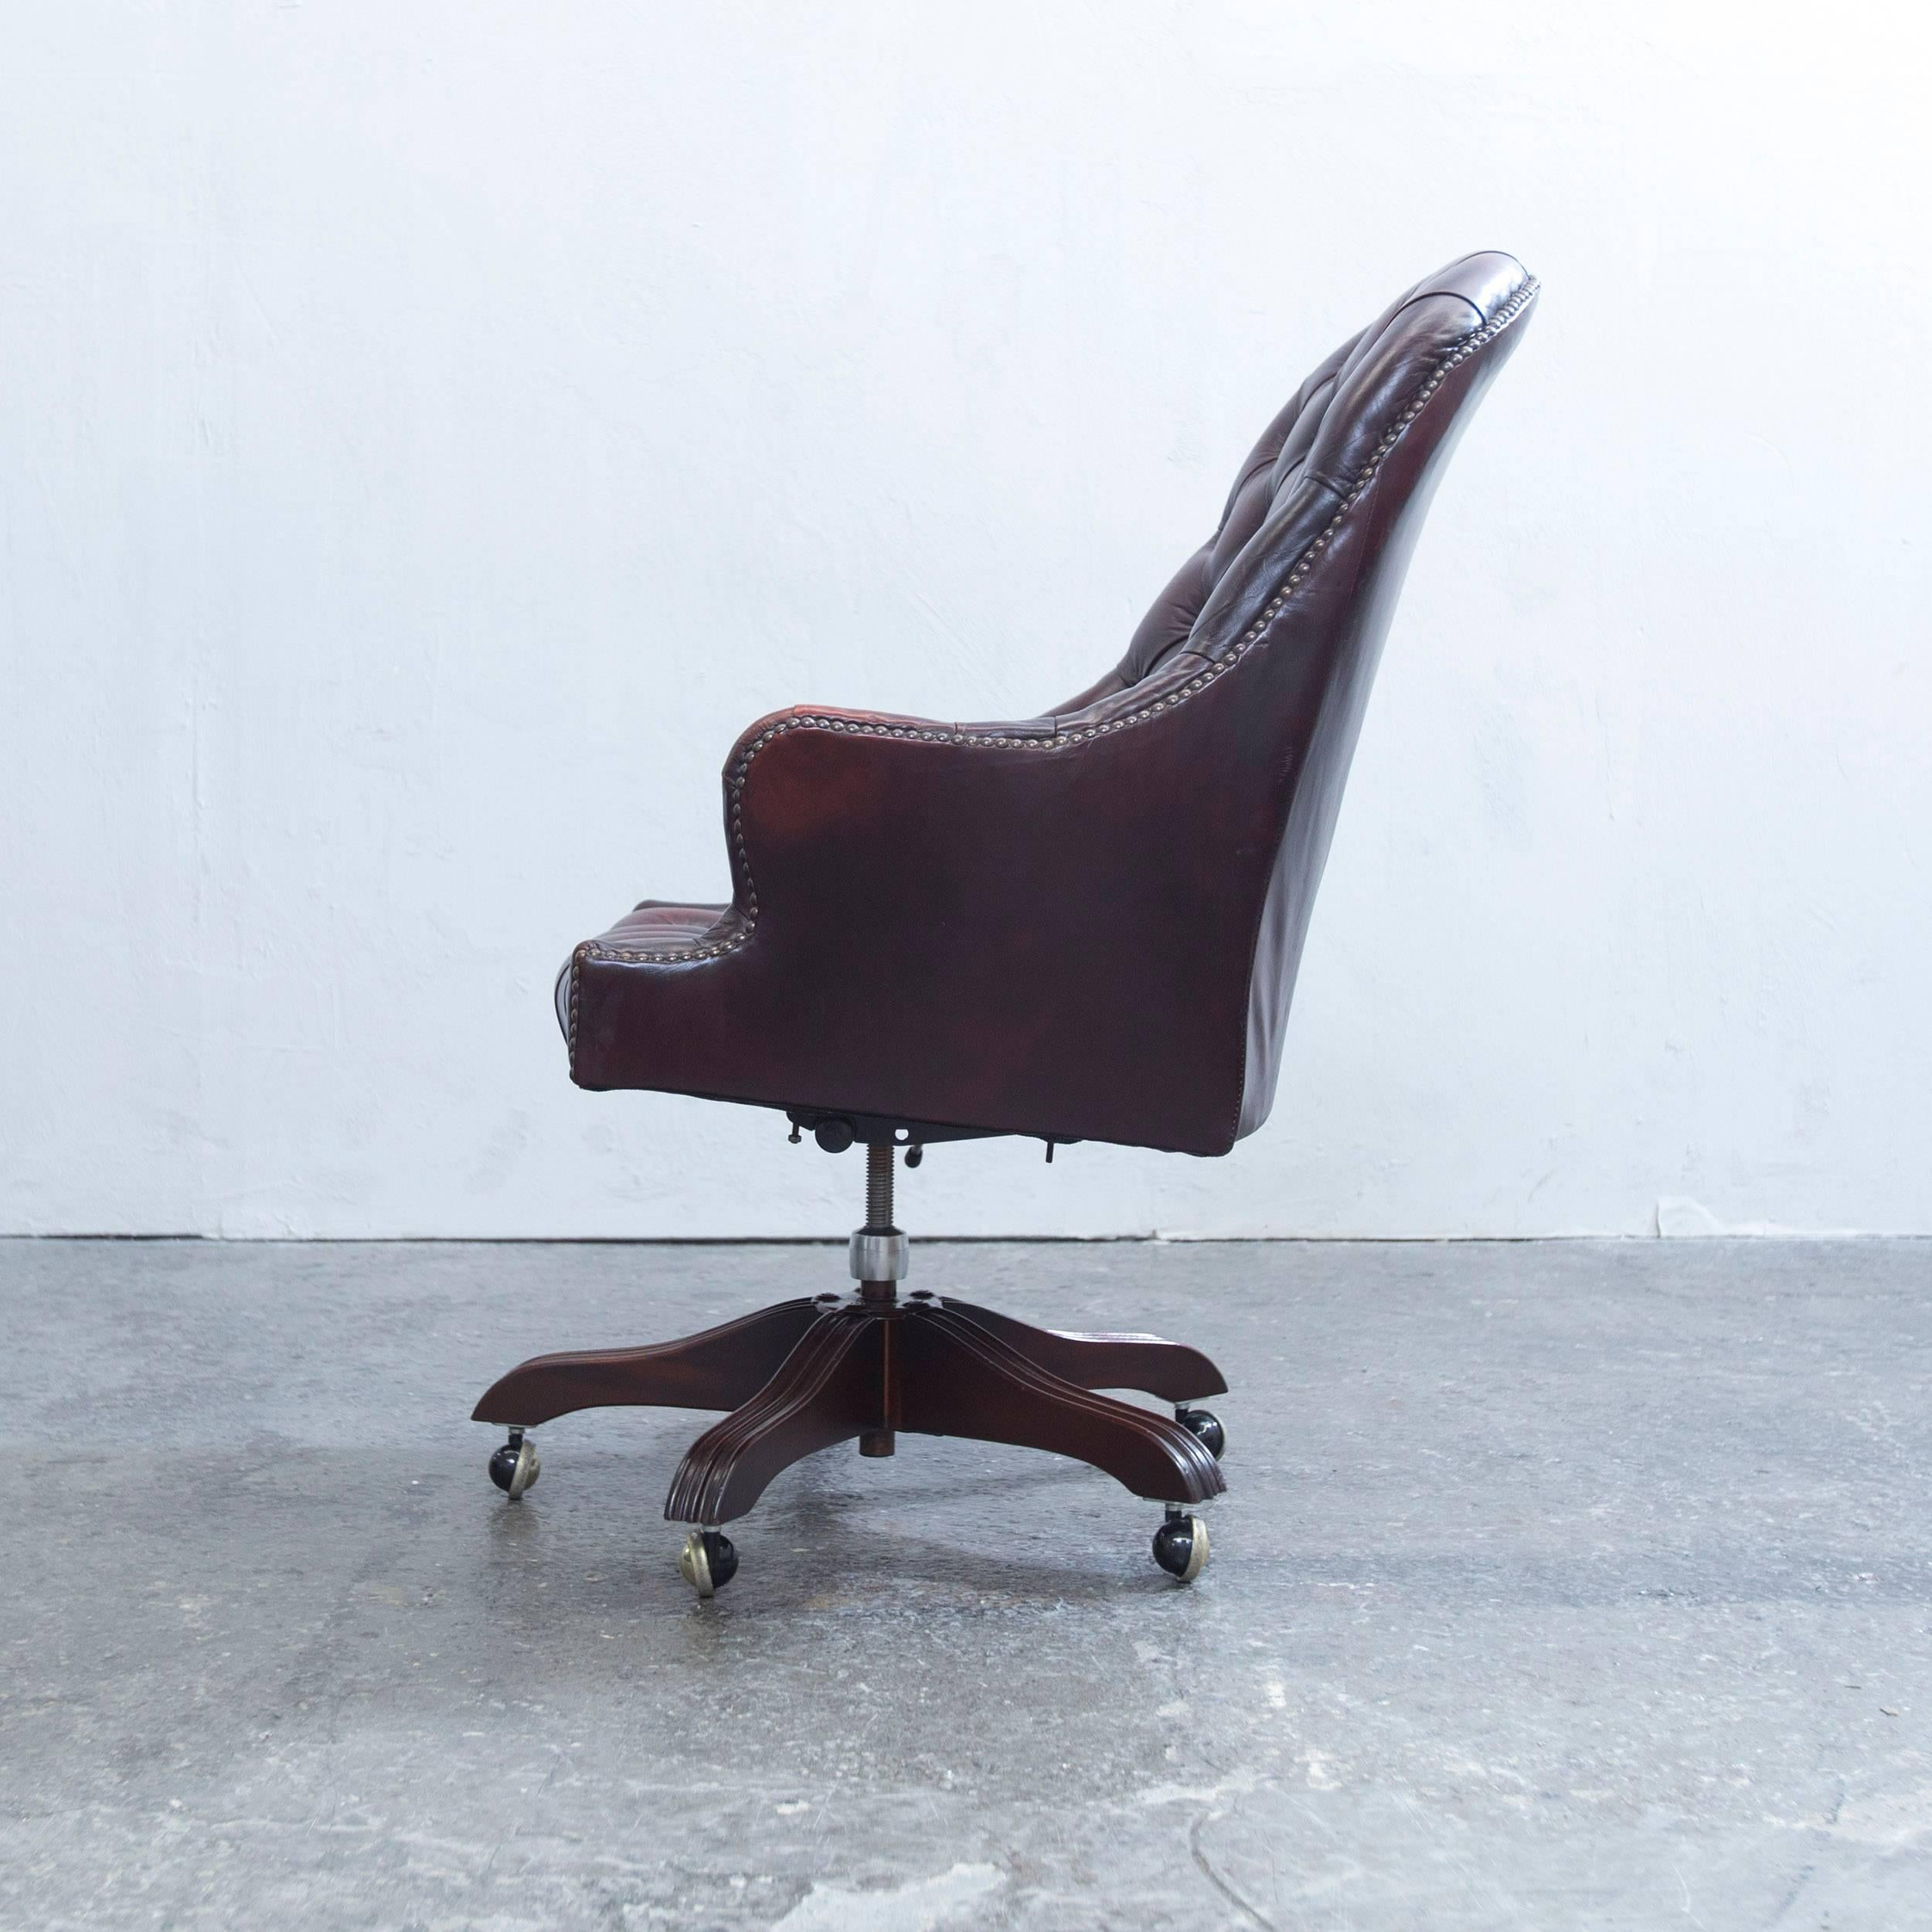 ergonomic chair norway contemporary chairs for living room norwegian vintage office